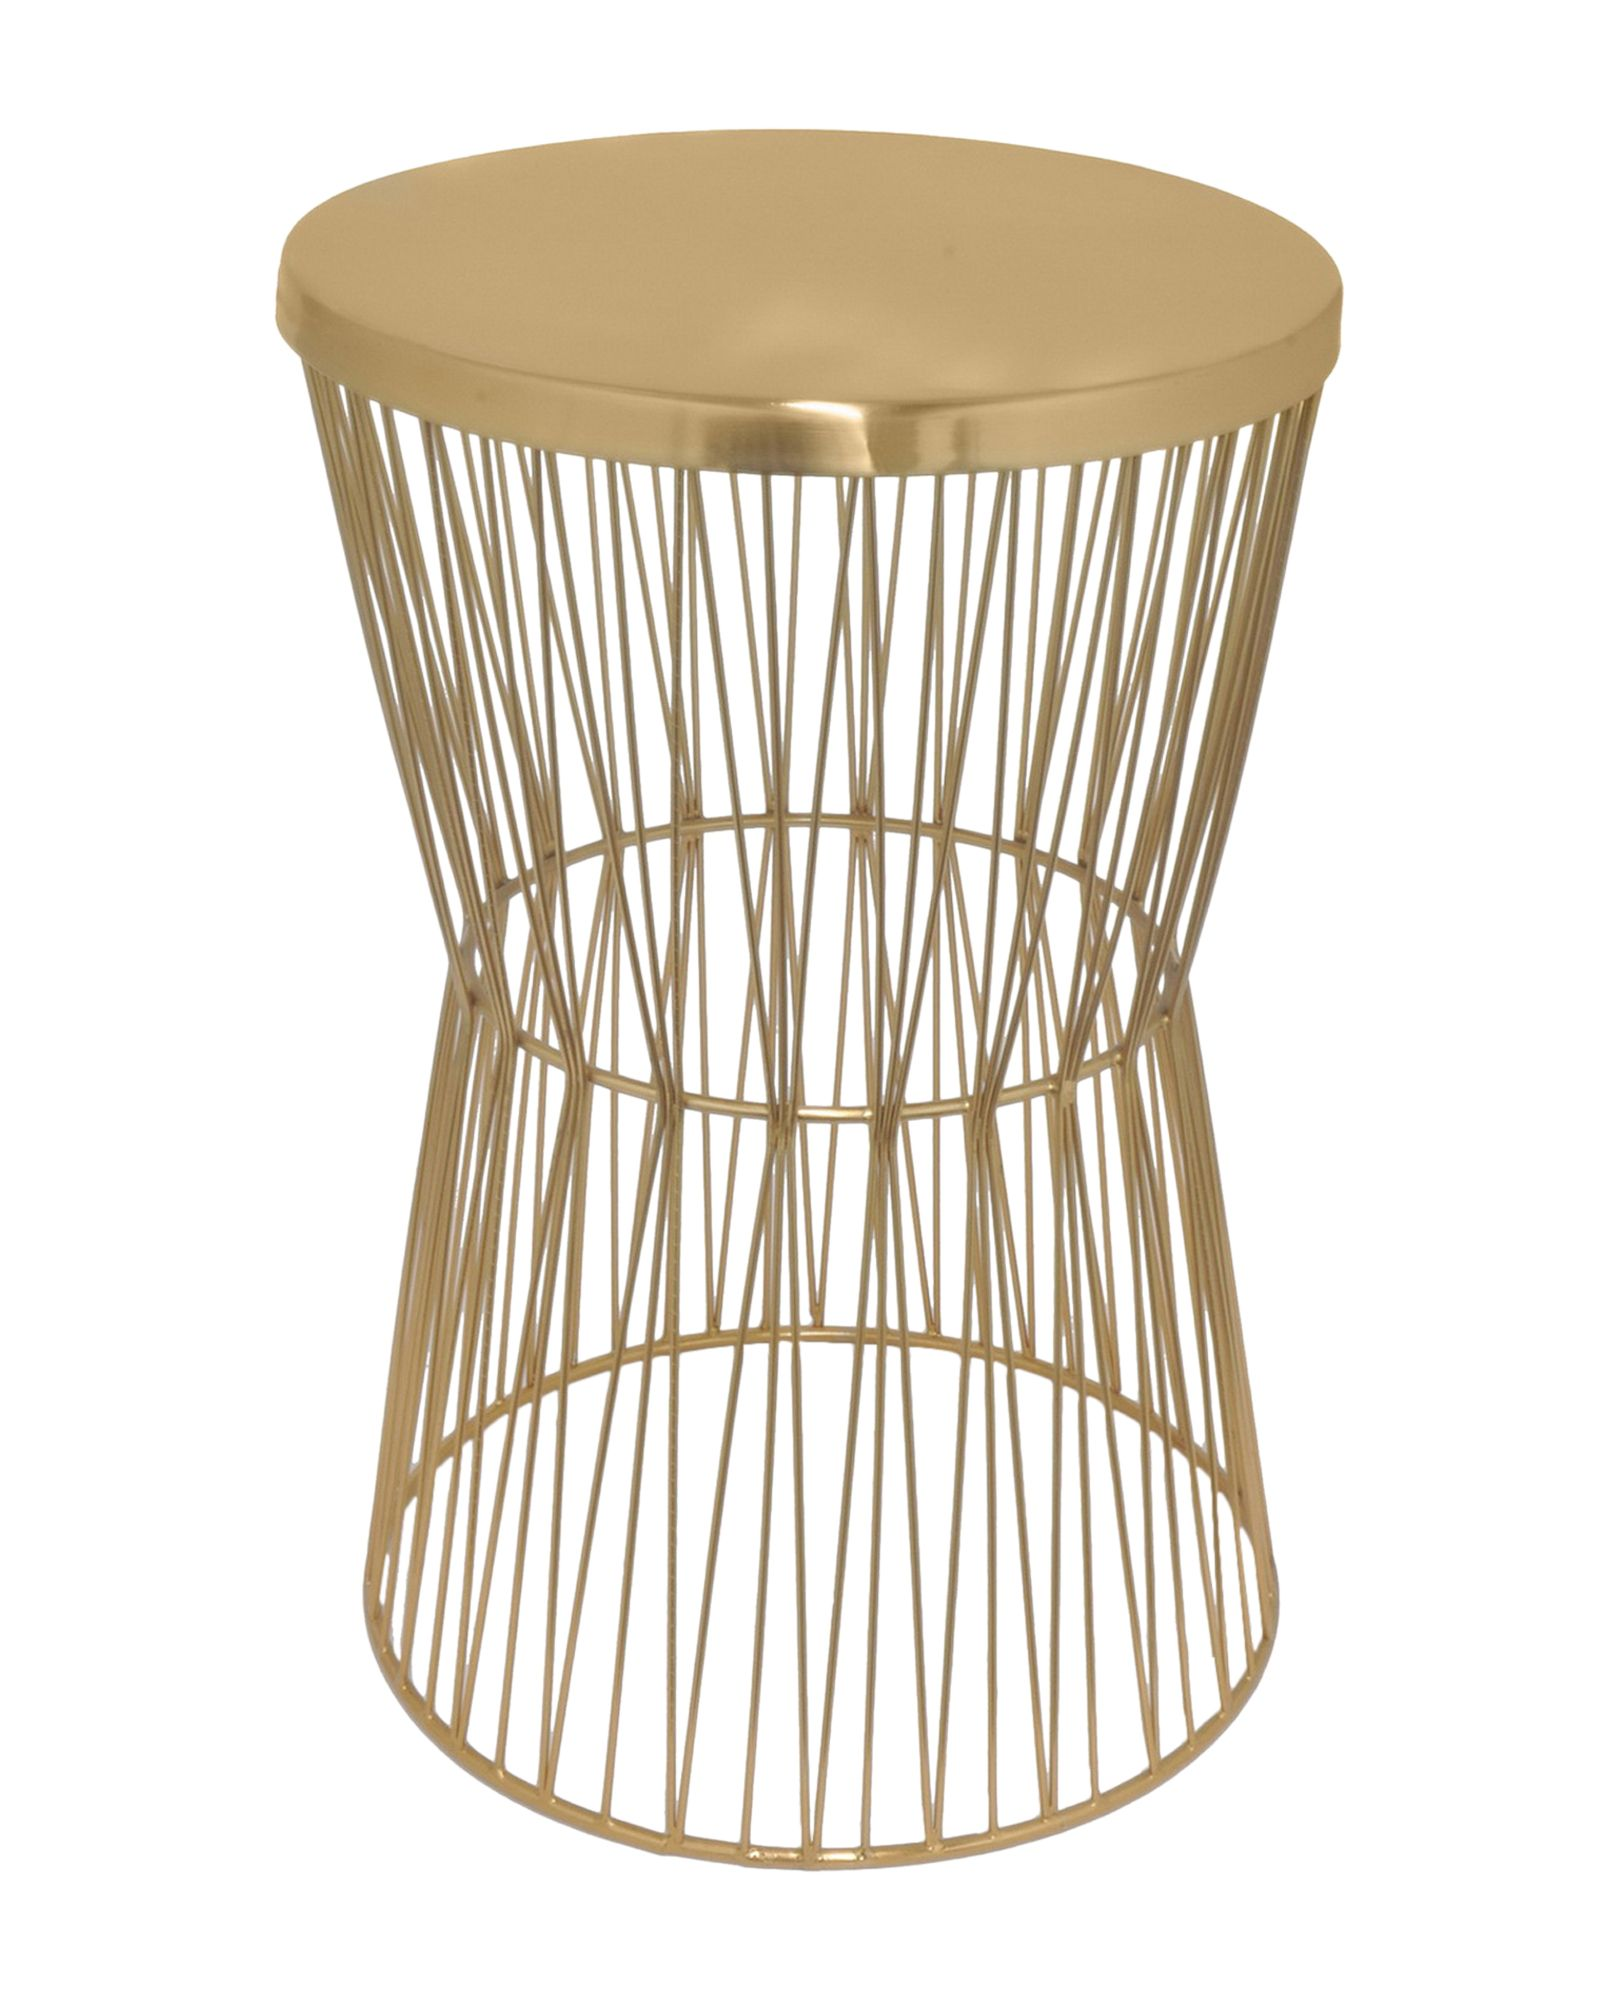 Three Hands Corp Copper Tone Accent Table